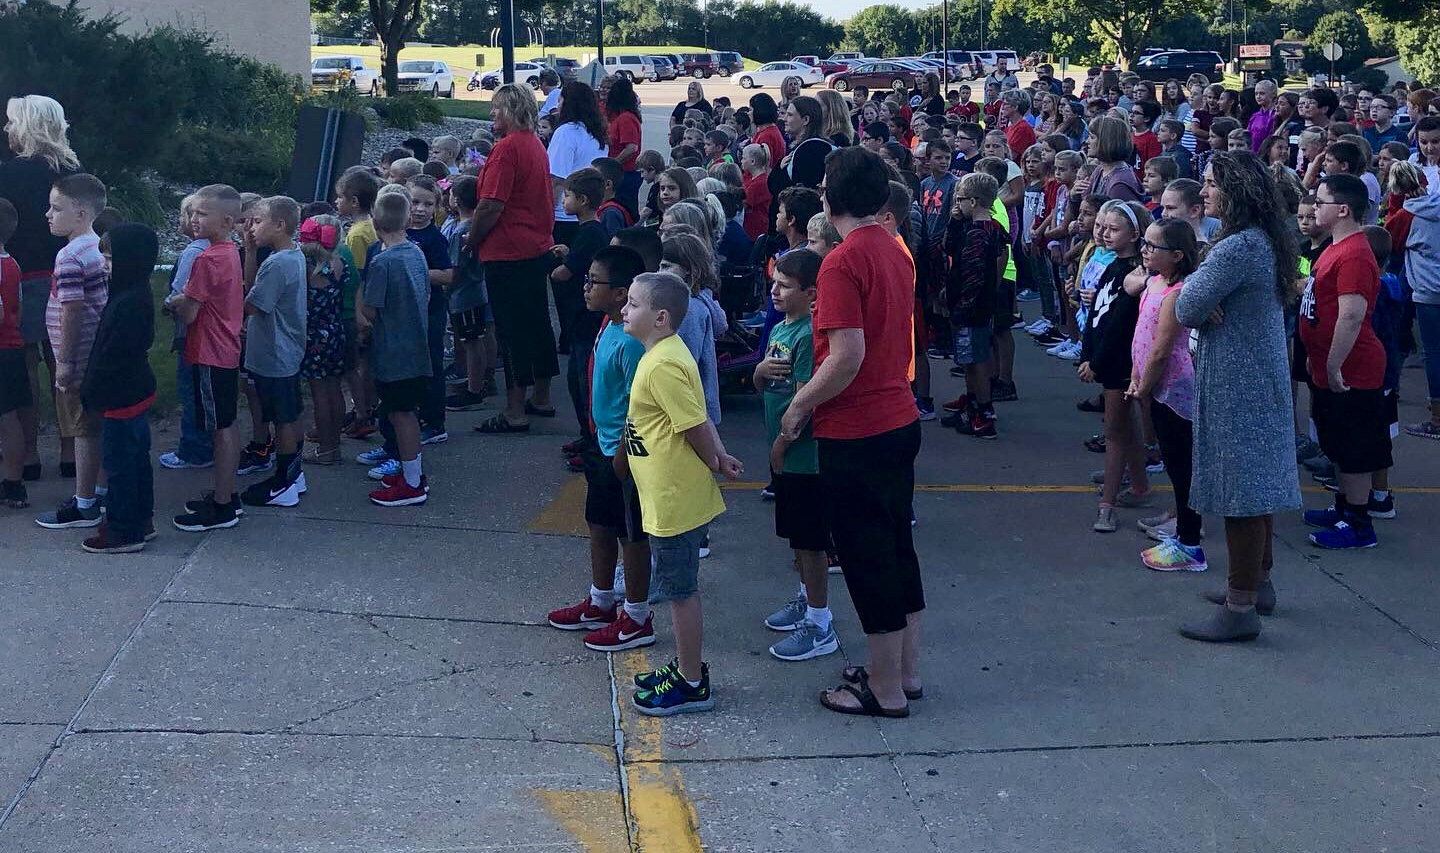 Kicking off the 2019-2020 School Year